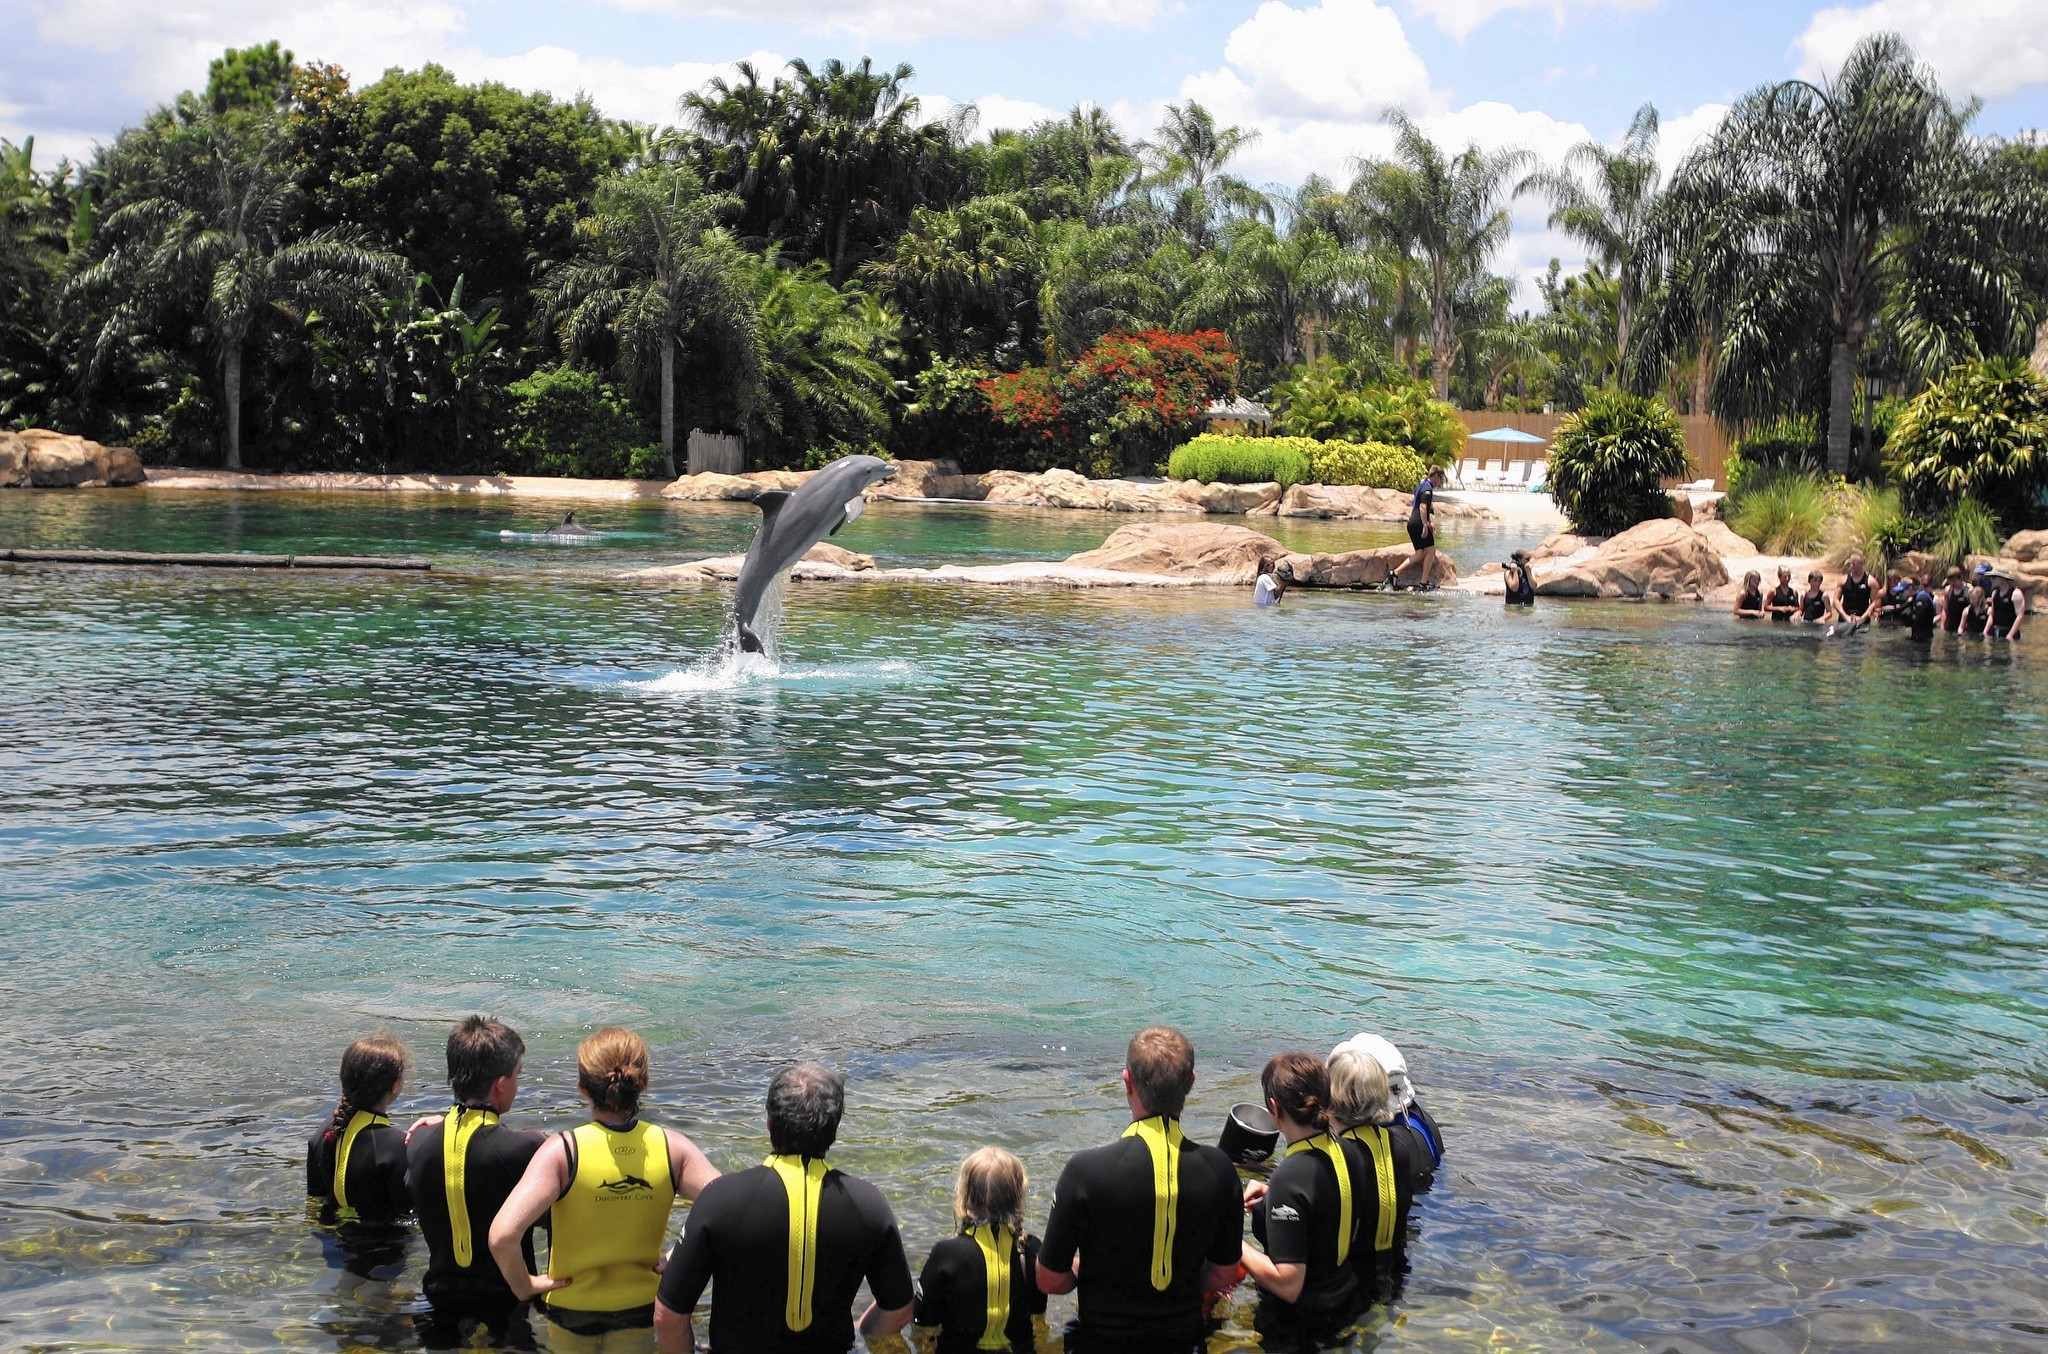 Discovery Cove Brings Different Feel Than Theme Park